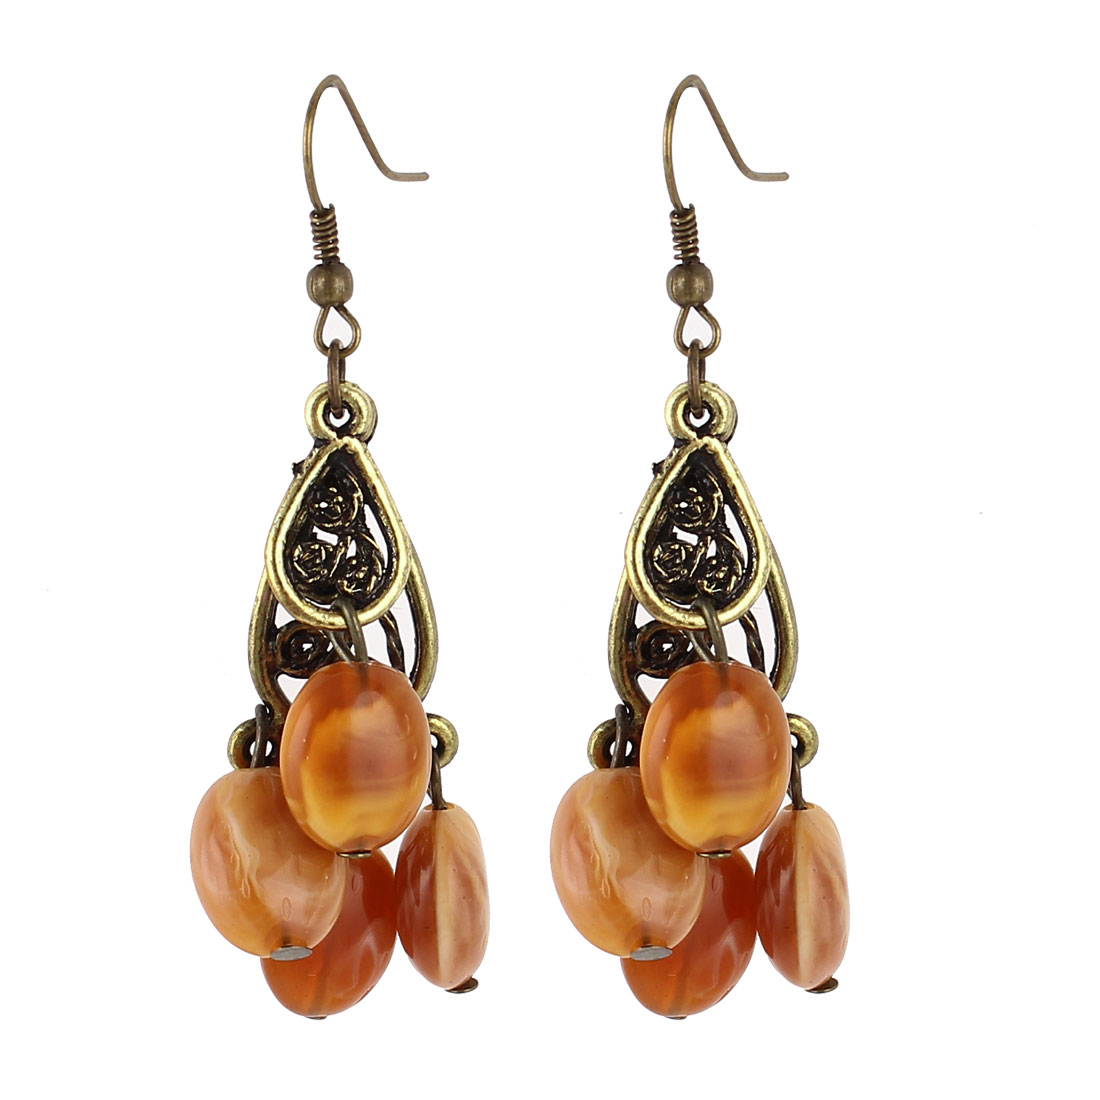 Lady Pair Brown Plastic Beads Ornament Bronze Tone Frame Dangling Pierced Hook Earrings